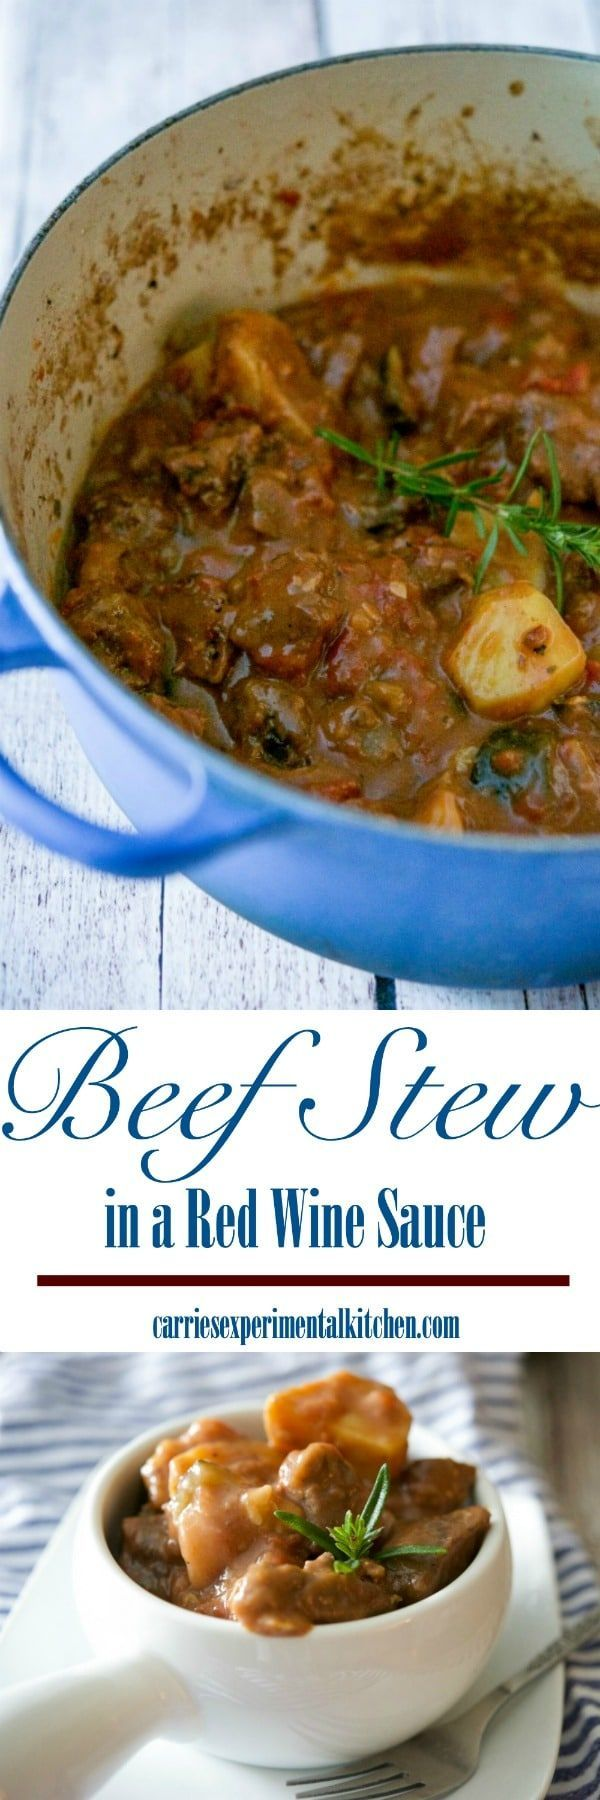 Beef stew made with zucchini, garlic, onions, fire roasted tomatoes, fresh rosemary, horseradish and red wine is unbelievably delicious. via @CarriesExpKtchn #beef #stew